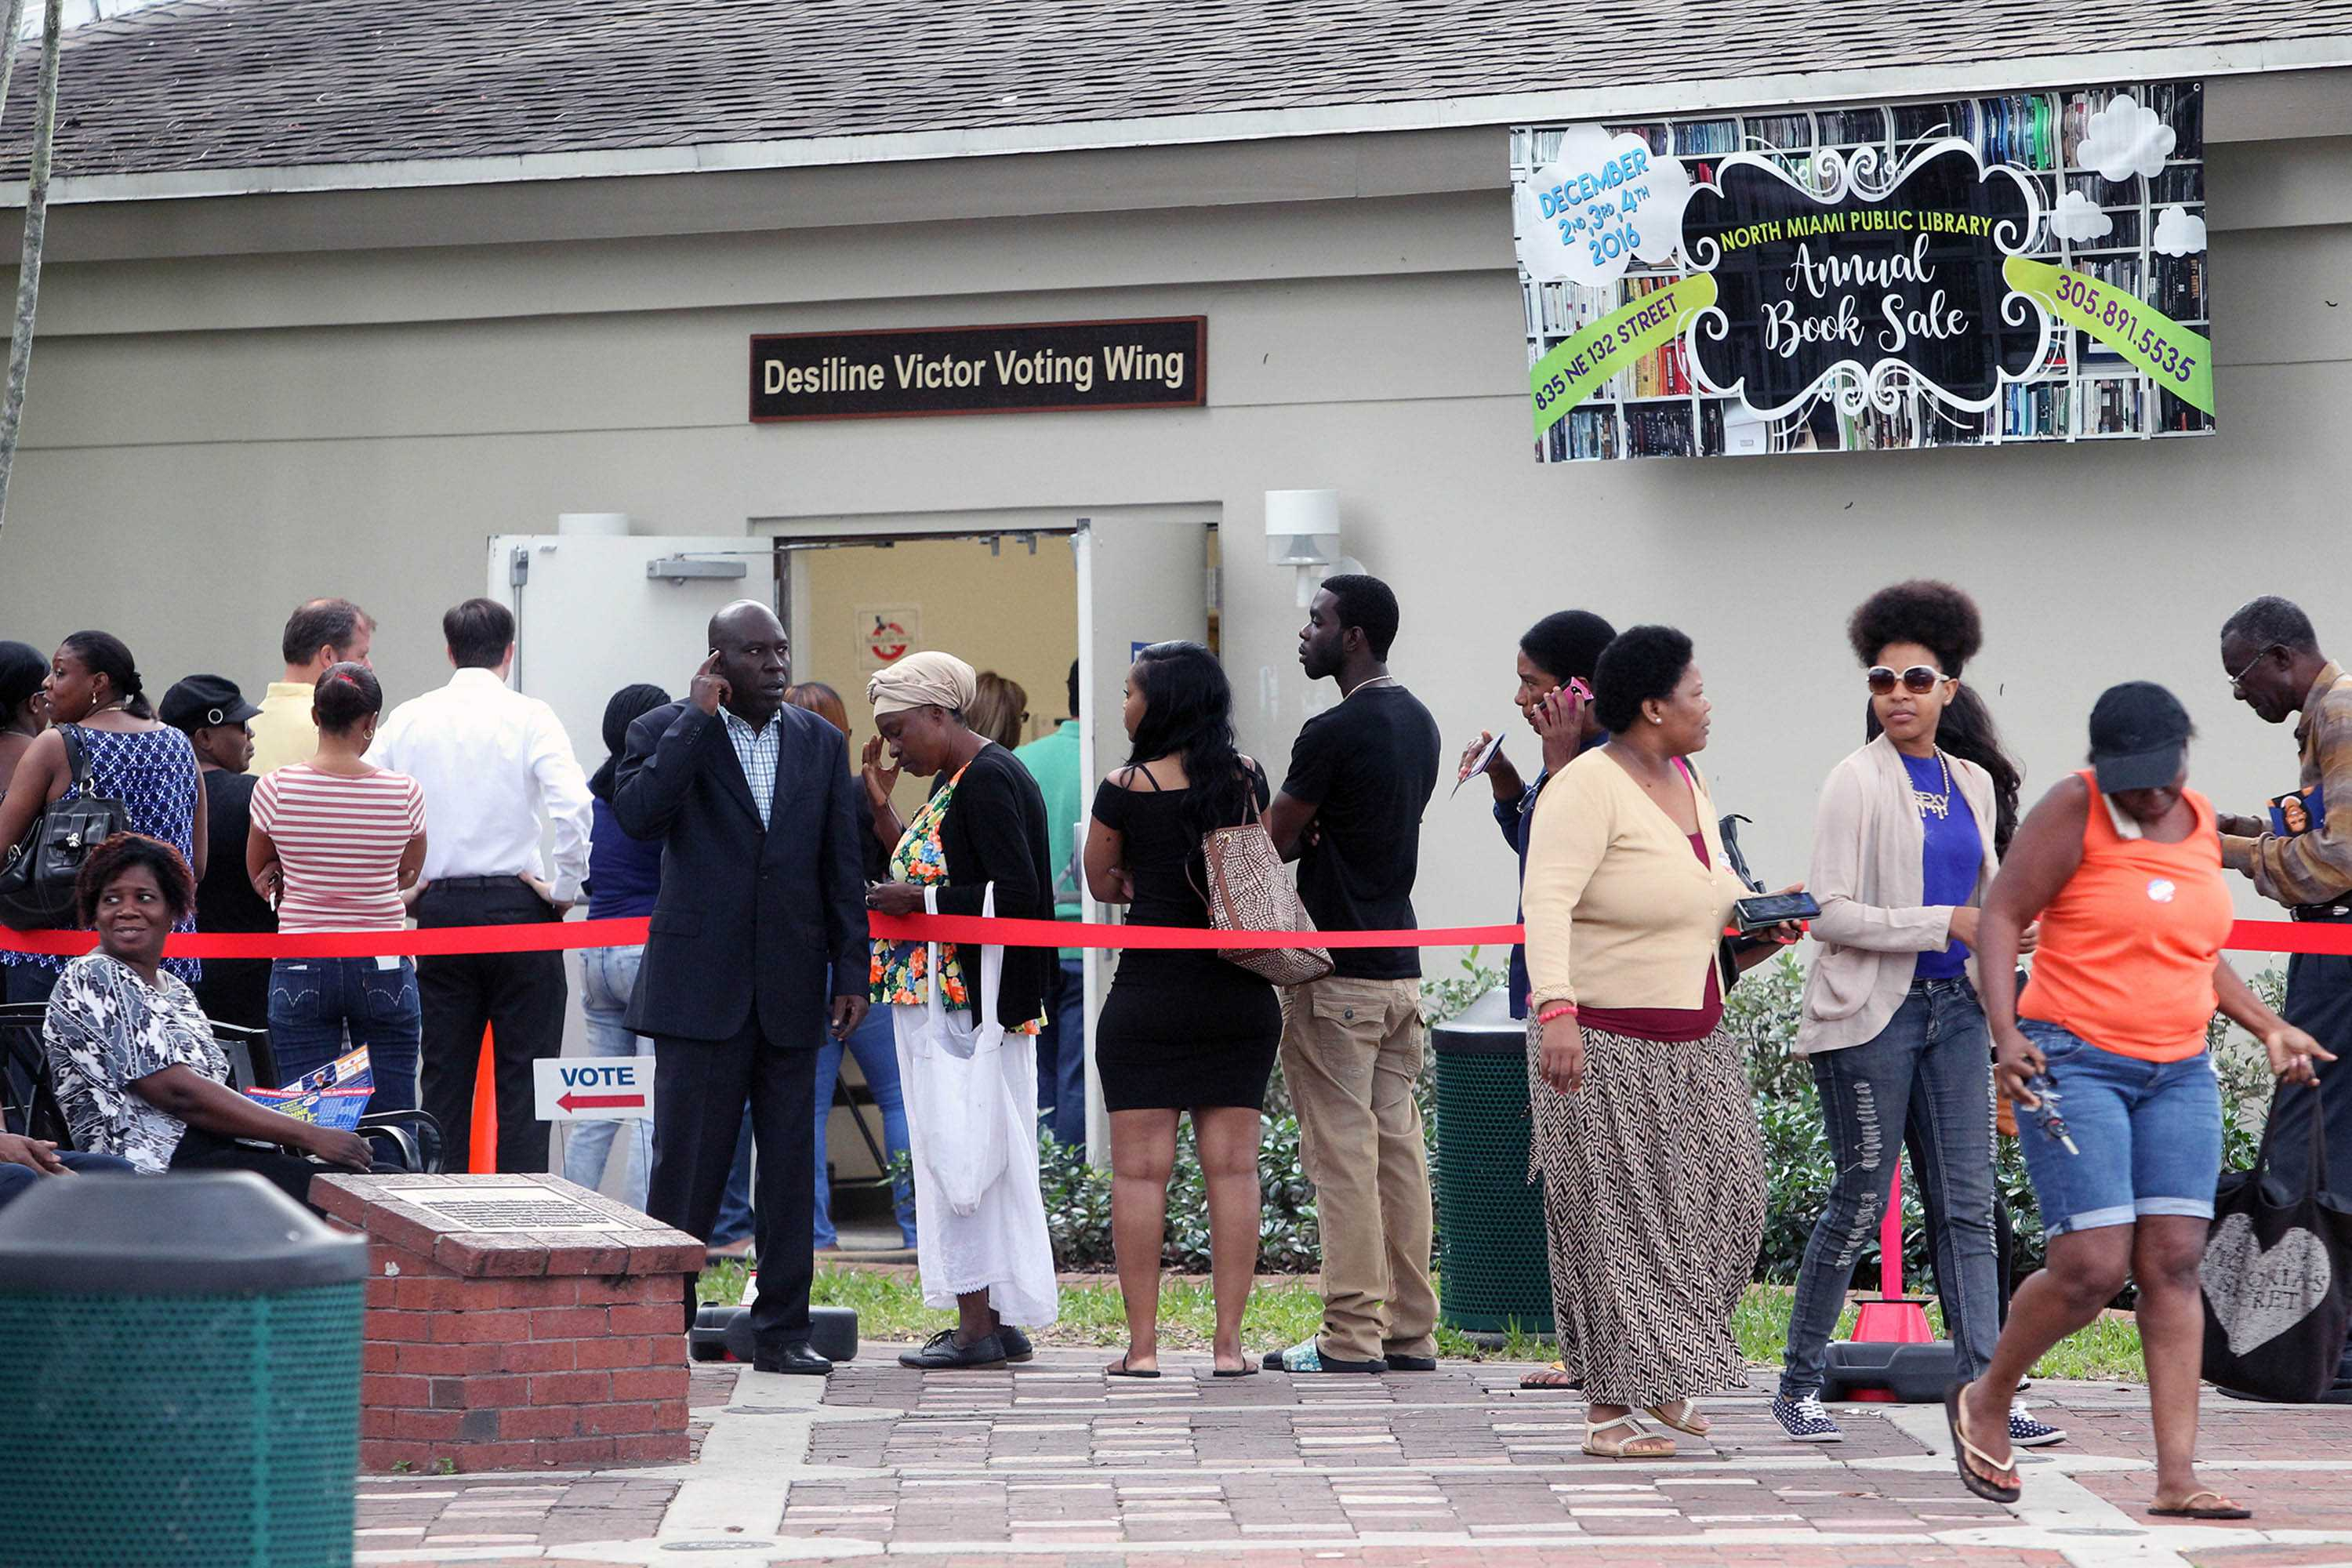 A group of people stand in line waiting to vote early outside the North Miami Public Library on Friday, Nov. 4, 2016. (Roberto Koltun/Miami Herald/TNS)